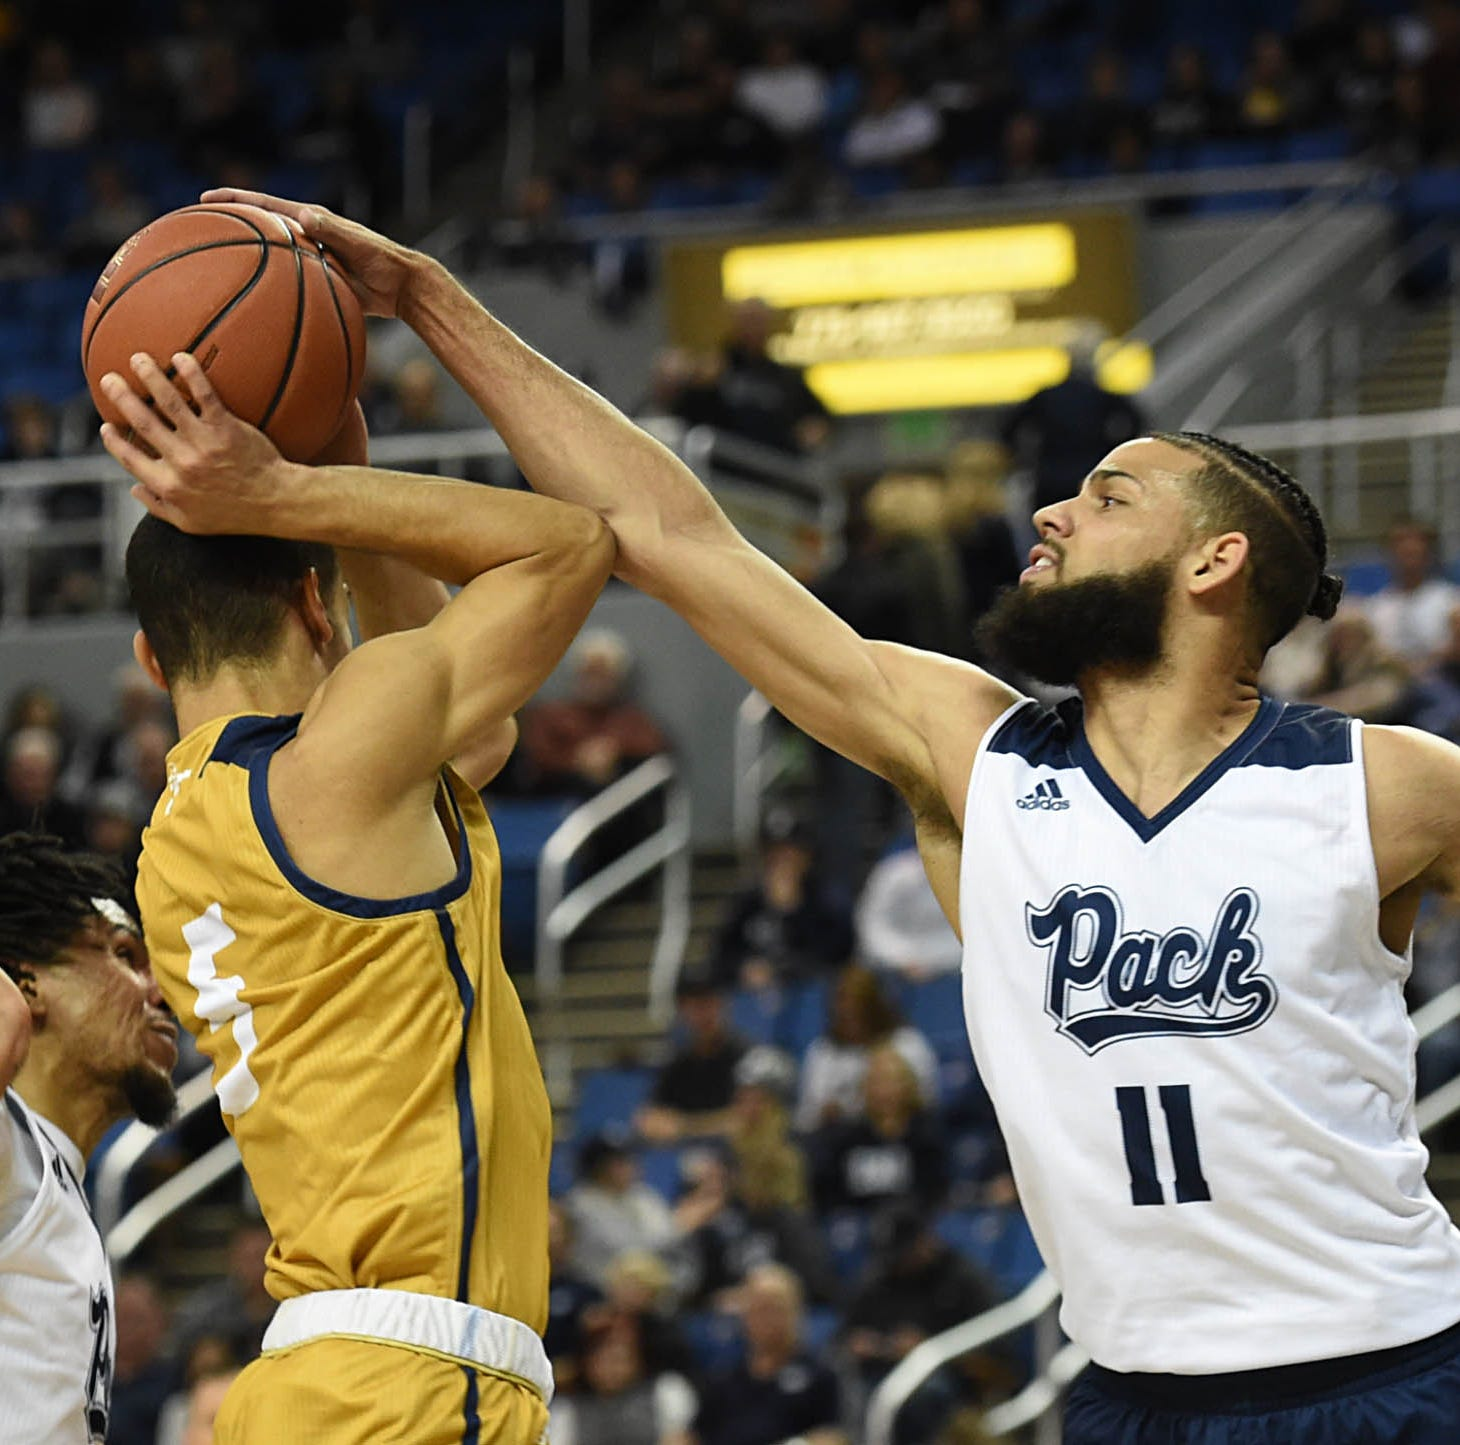 With blowout win over Cal Baptist, Nevada basketball opens 4-0 at home